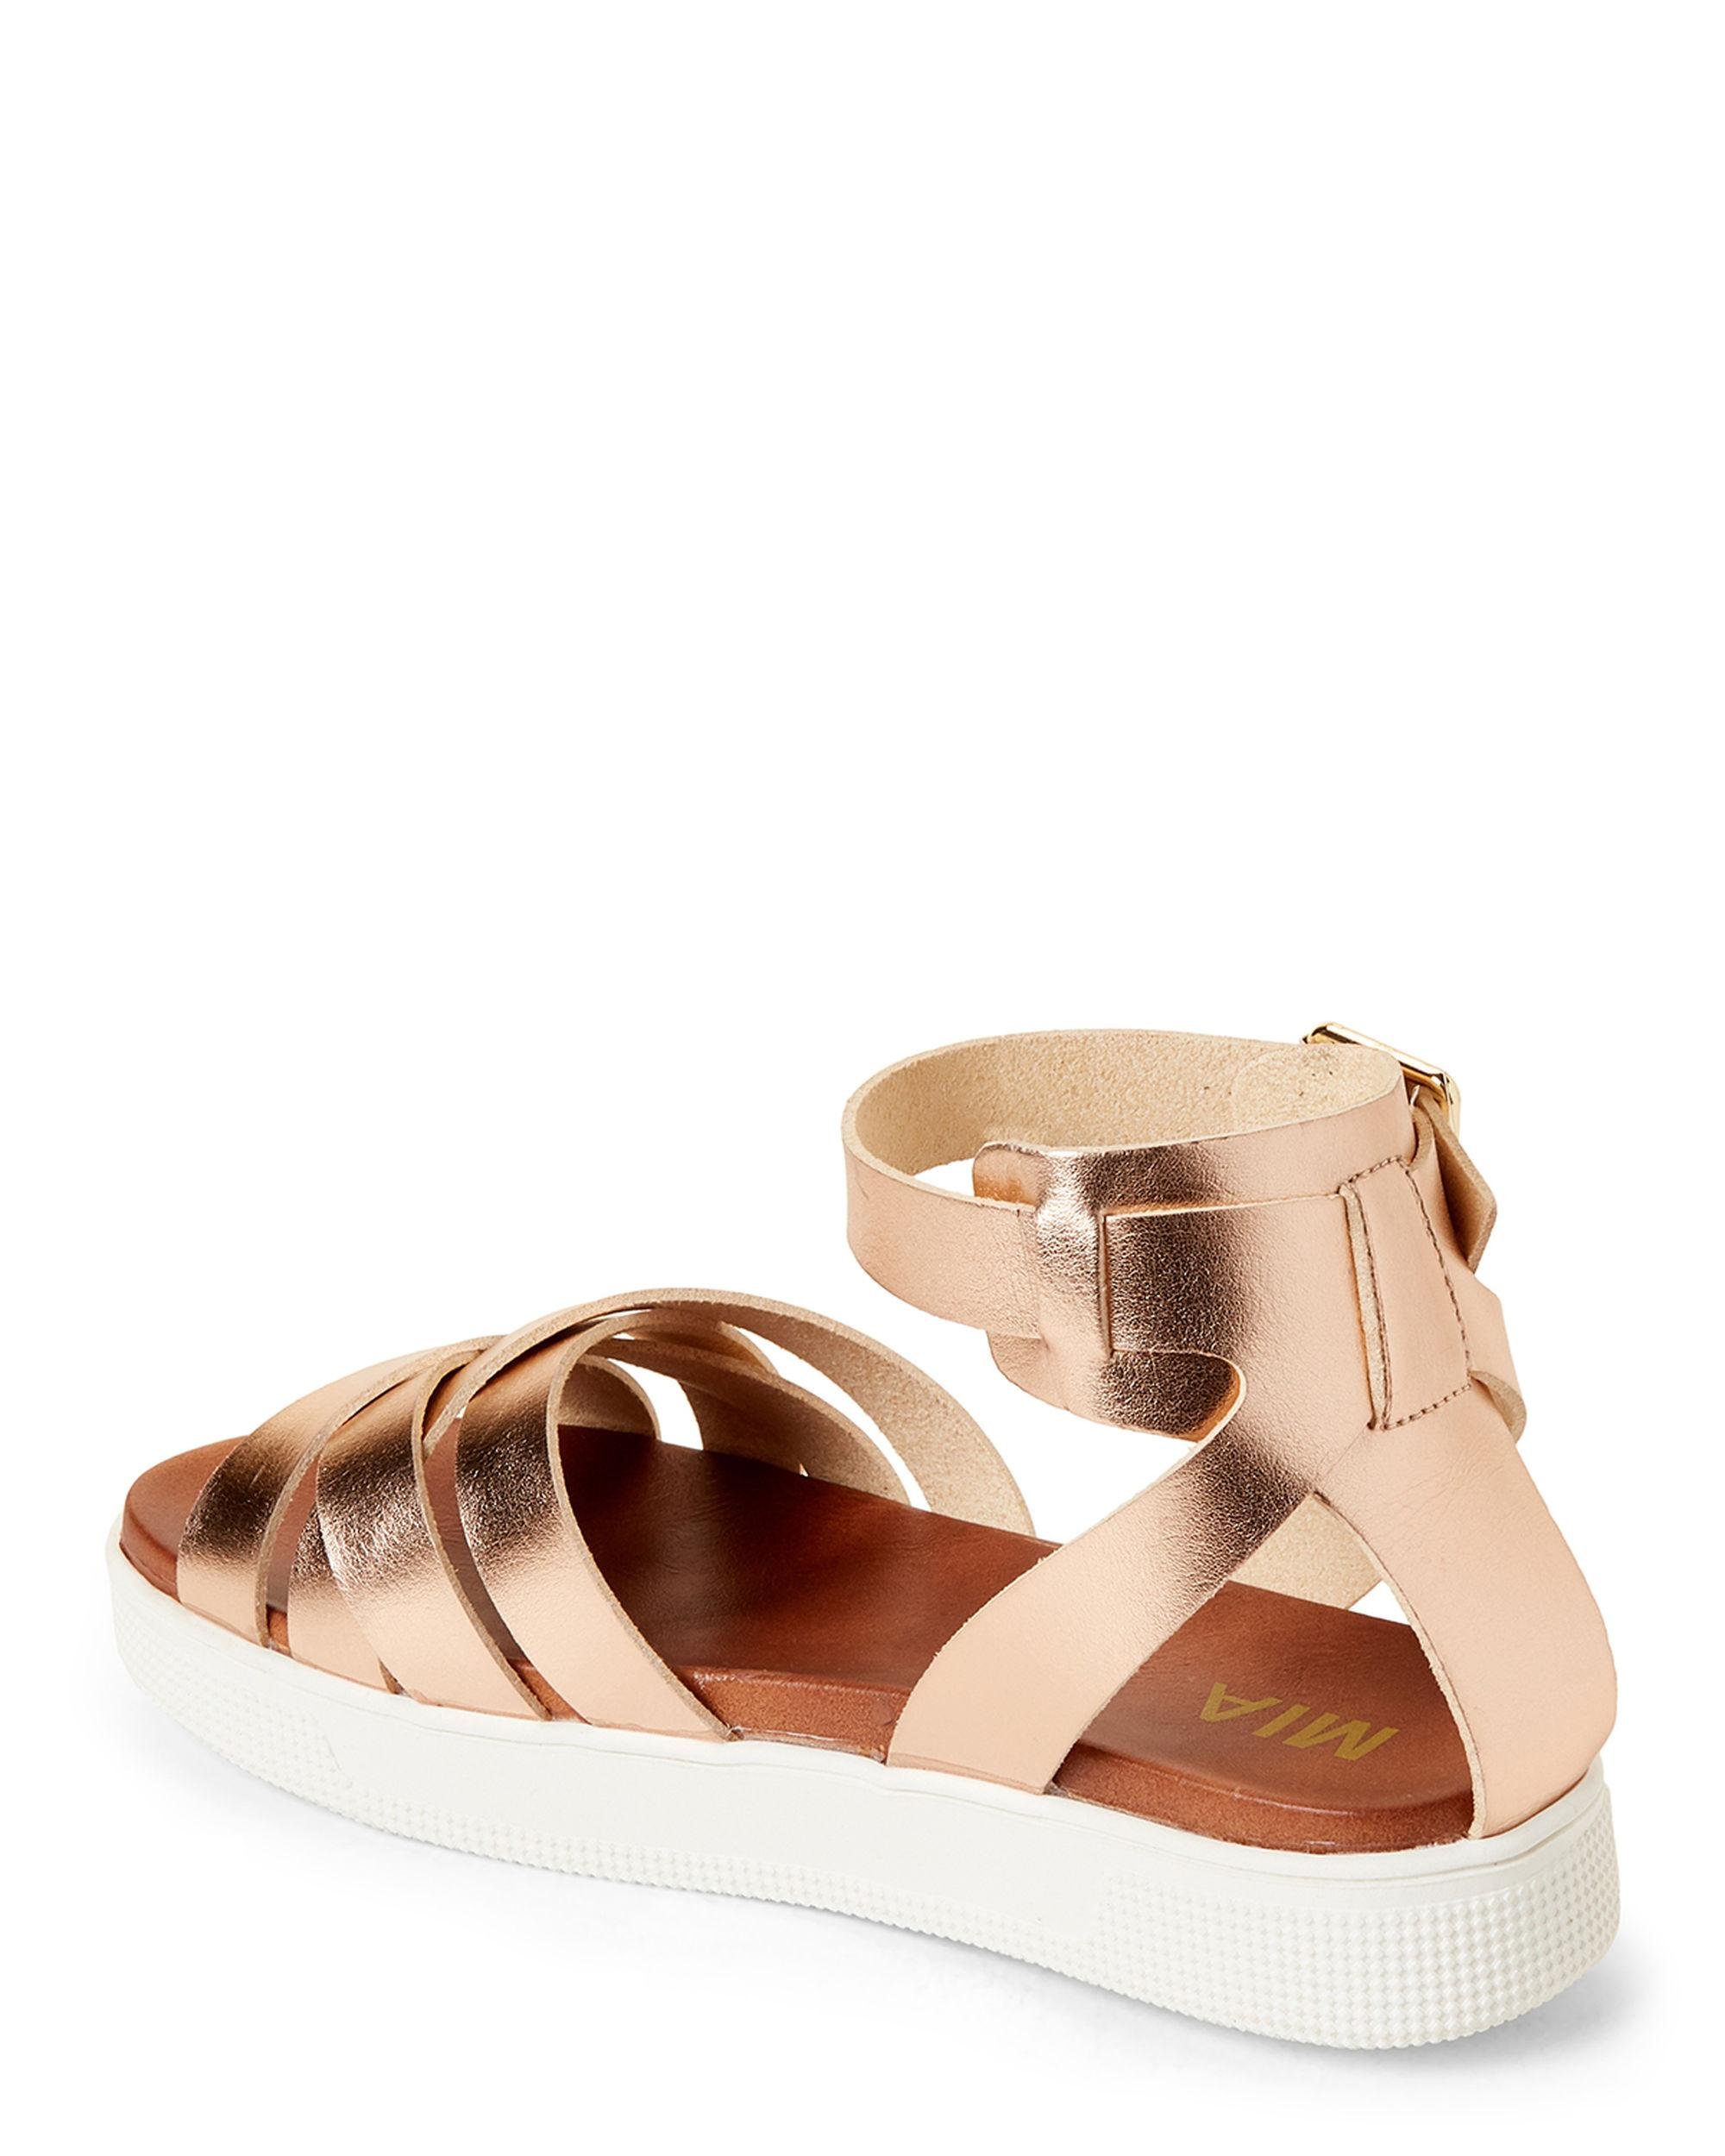 5839528b4f MIA - Multicolor Rose Gold Valerie Ankle Strap Platform Sandals - Lyst.  View fullscreen